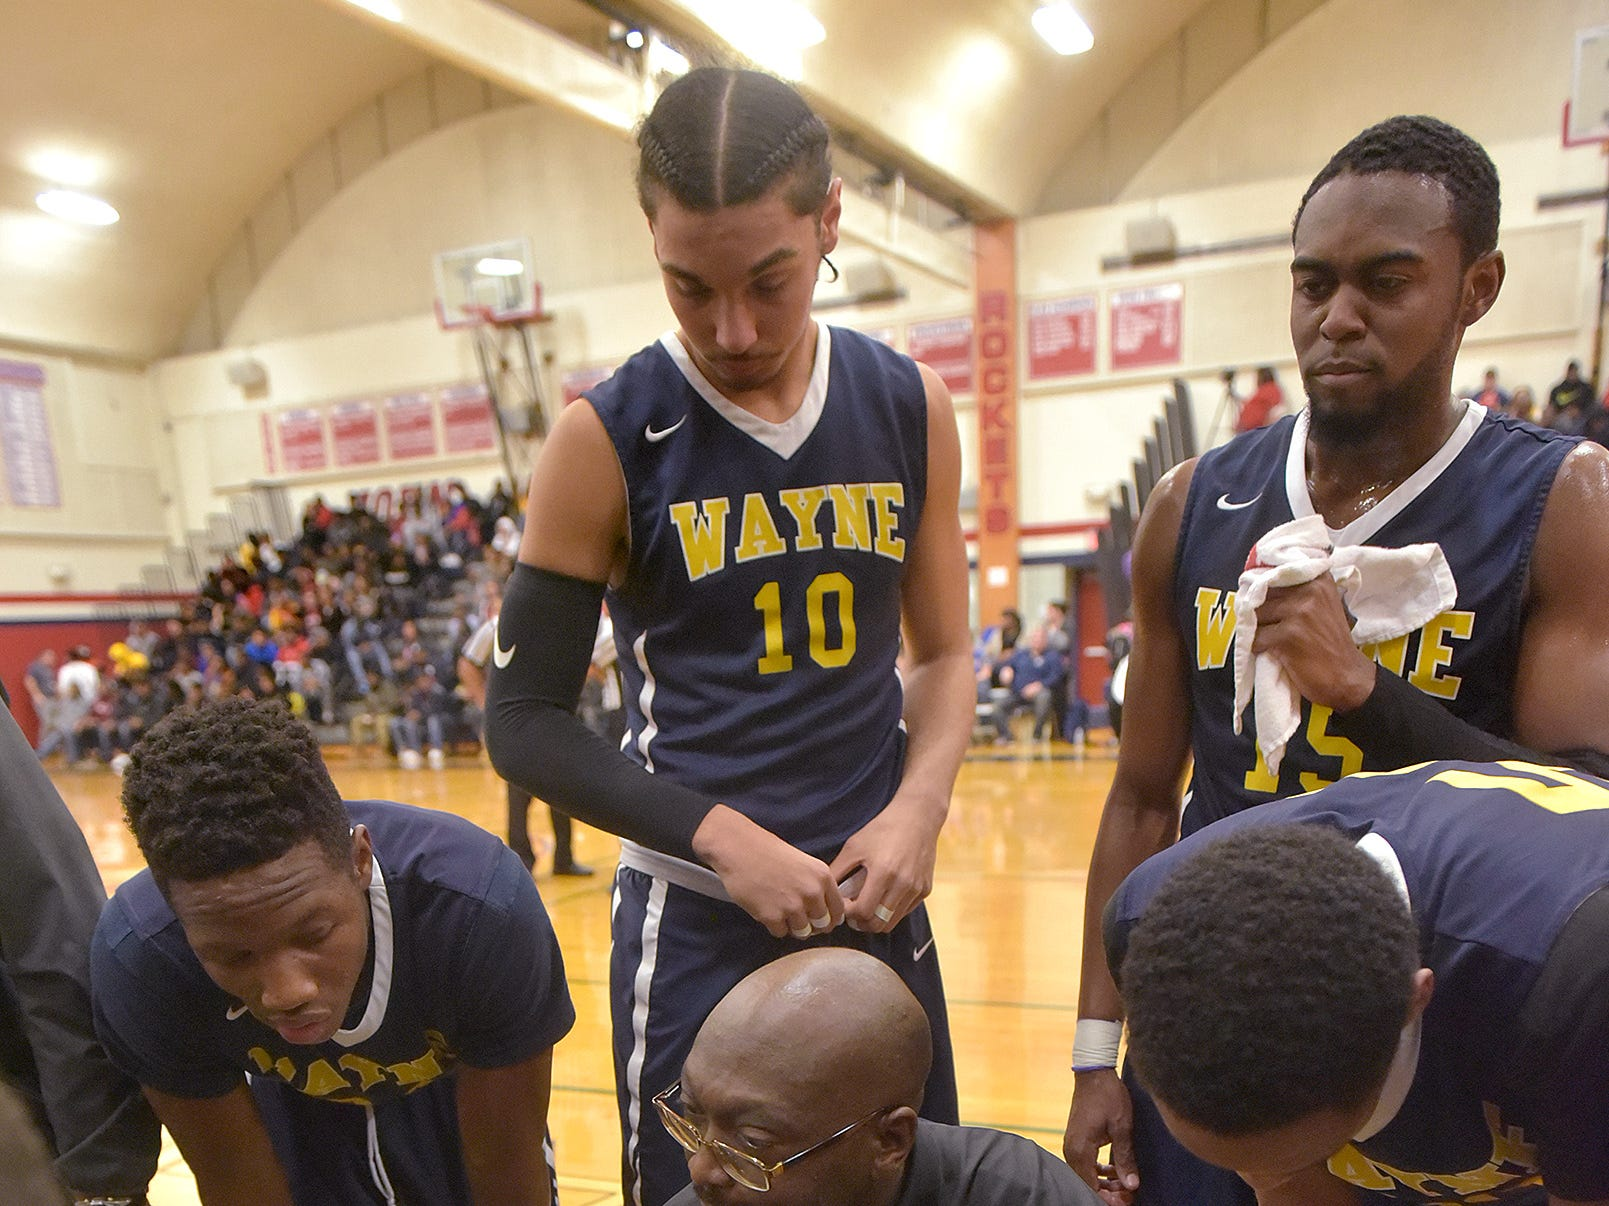 Wayne coach Nkwane Young speaks with the team during a time out.